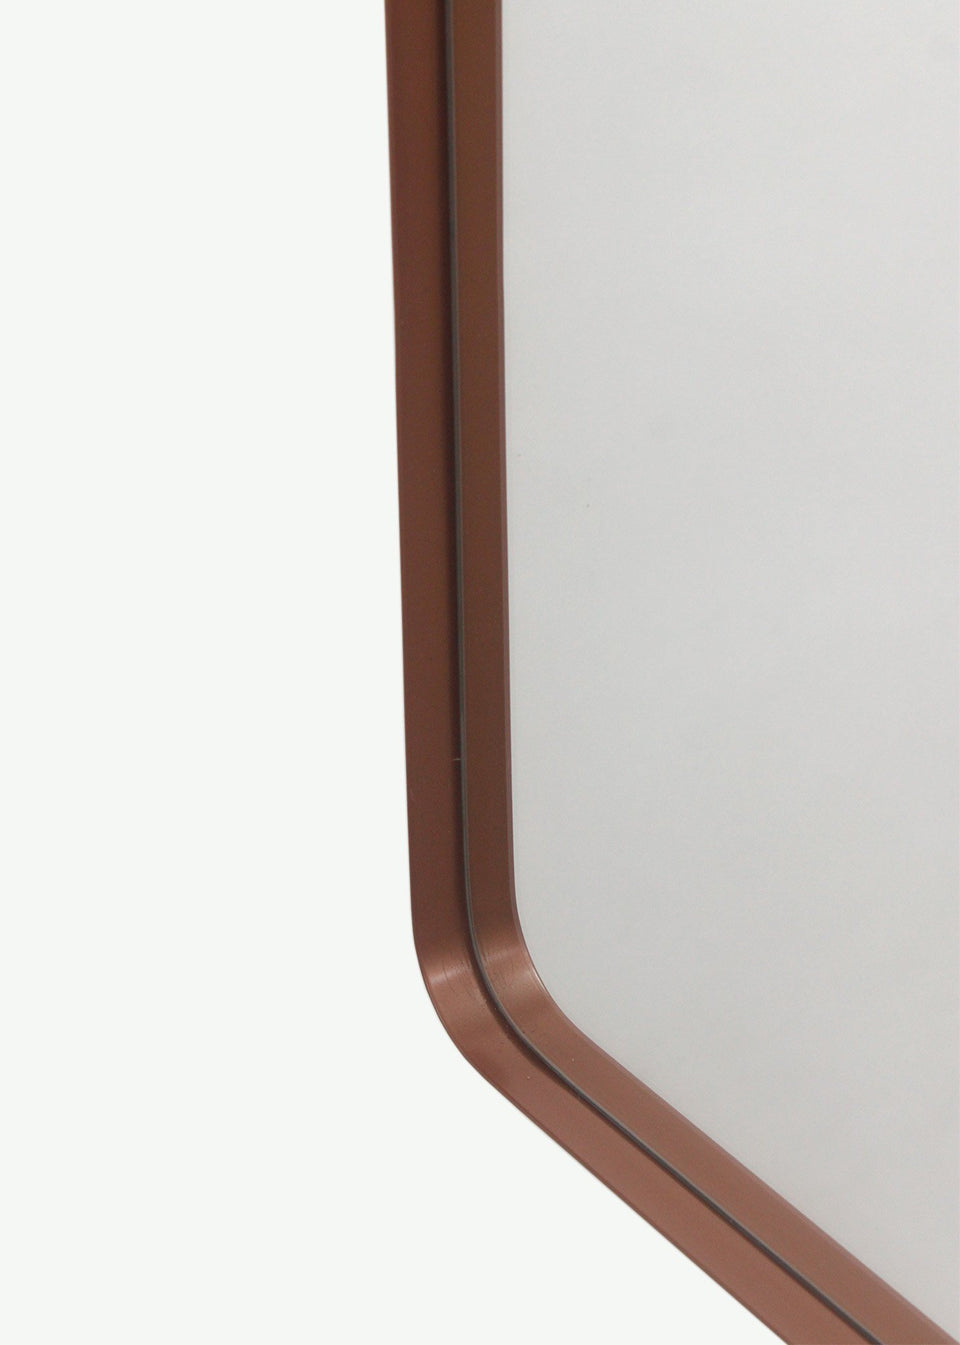 Deep Frame Soft Edge Mirrors